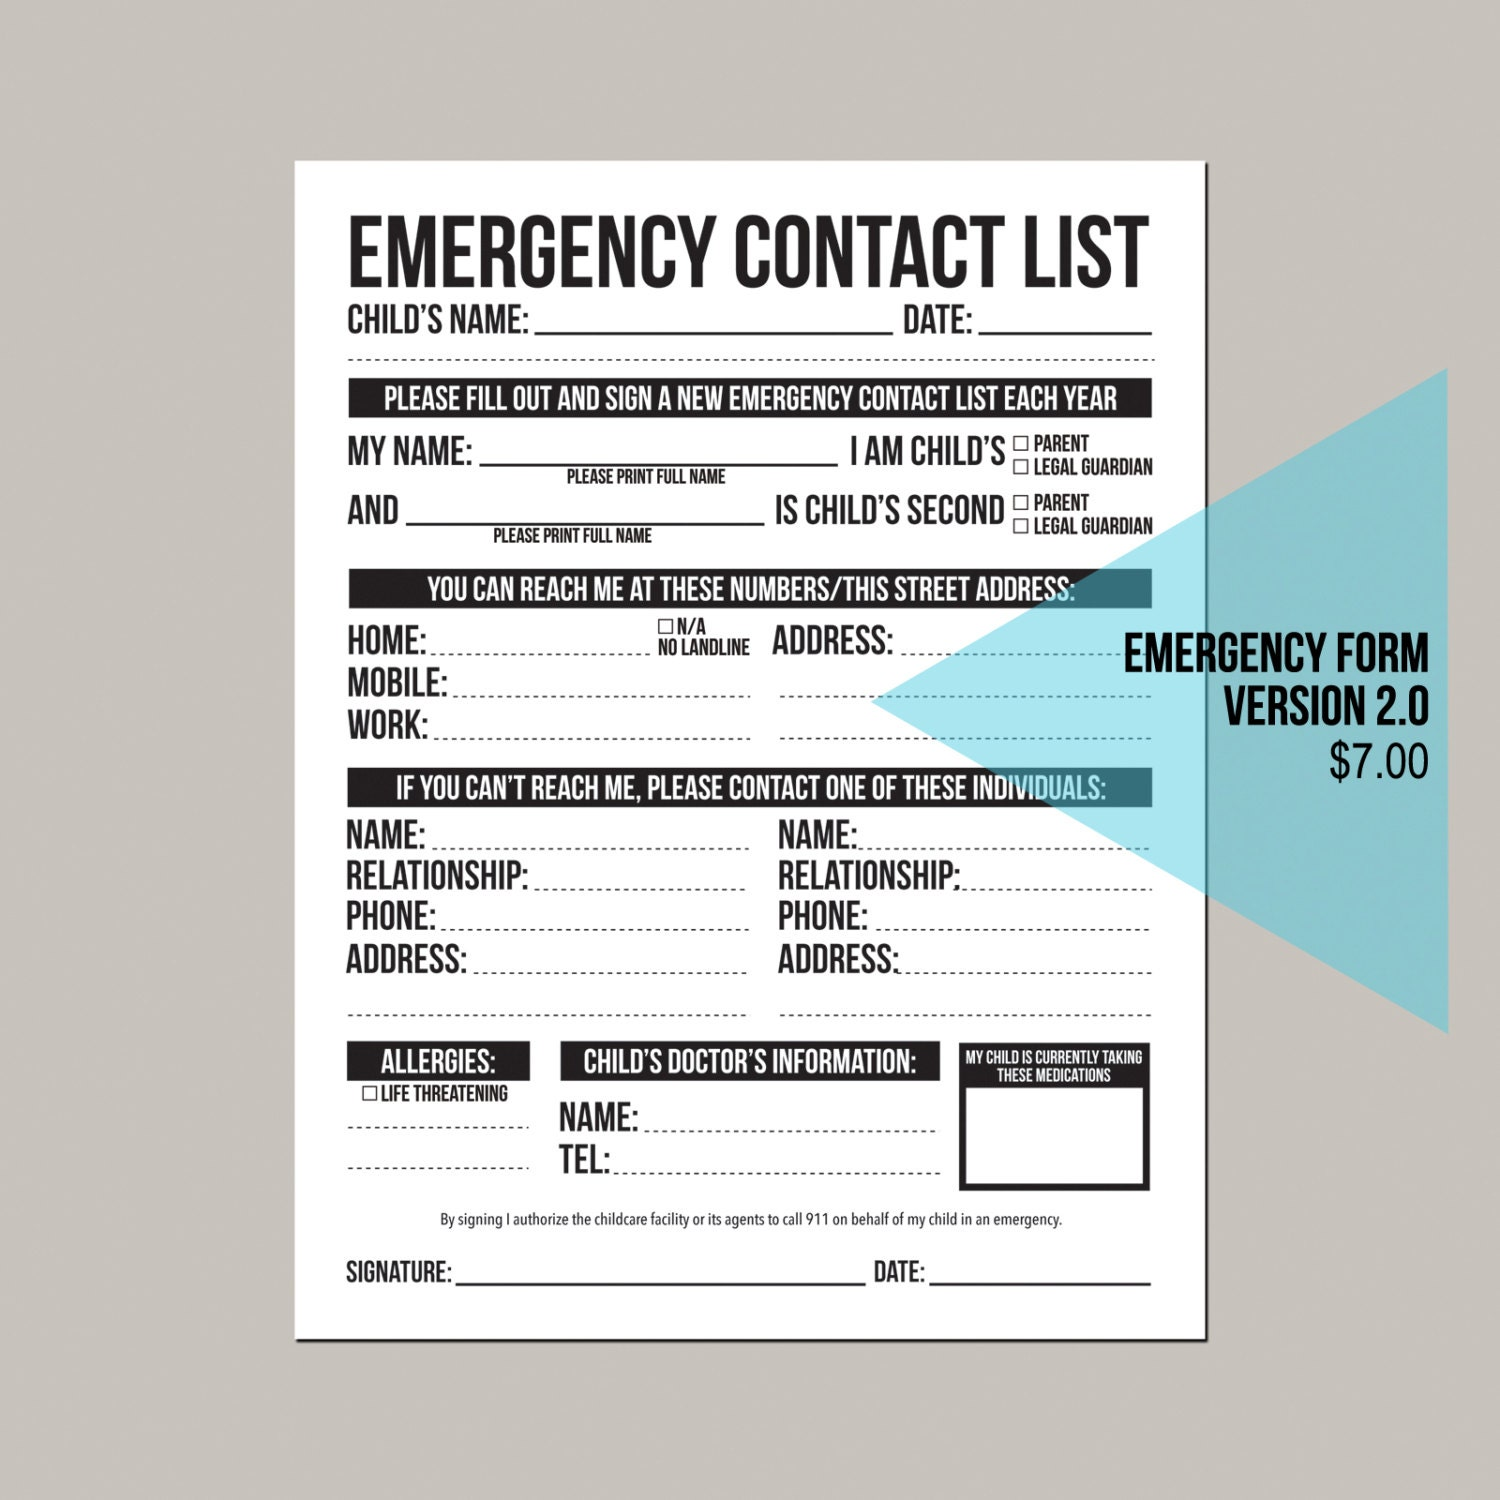 emergency contact list template free download name and email sign up ...